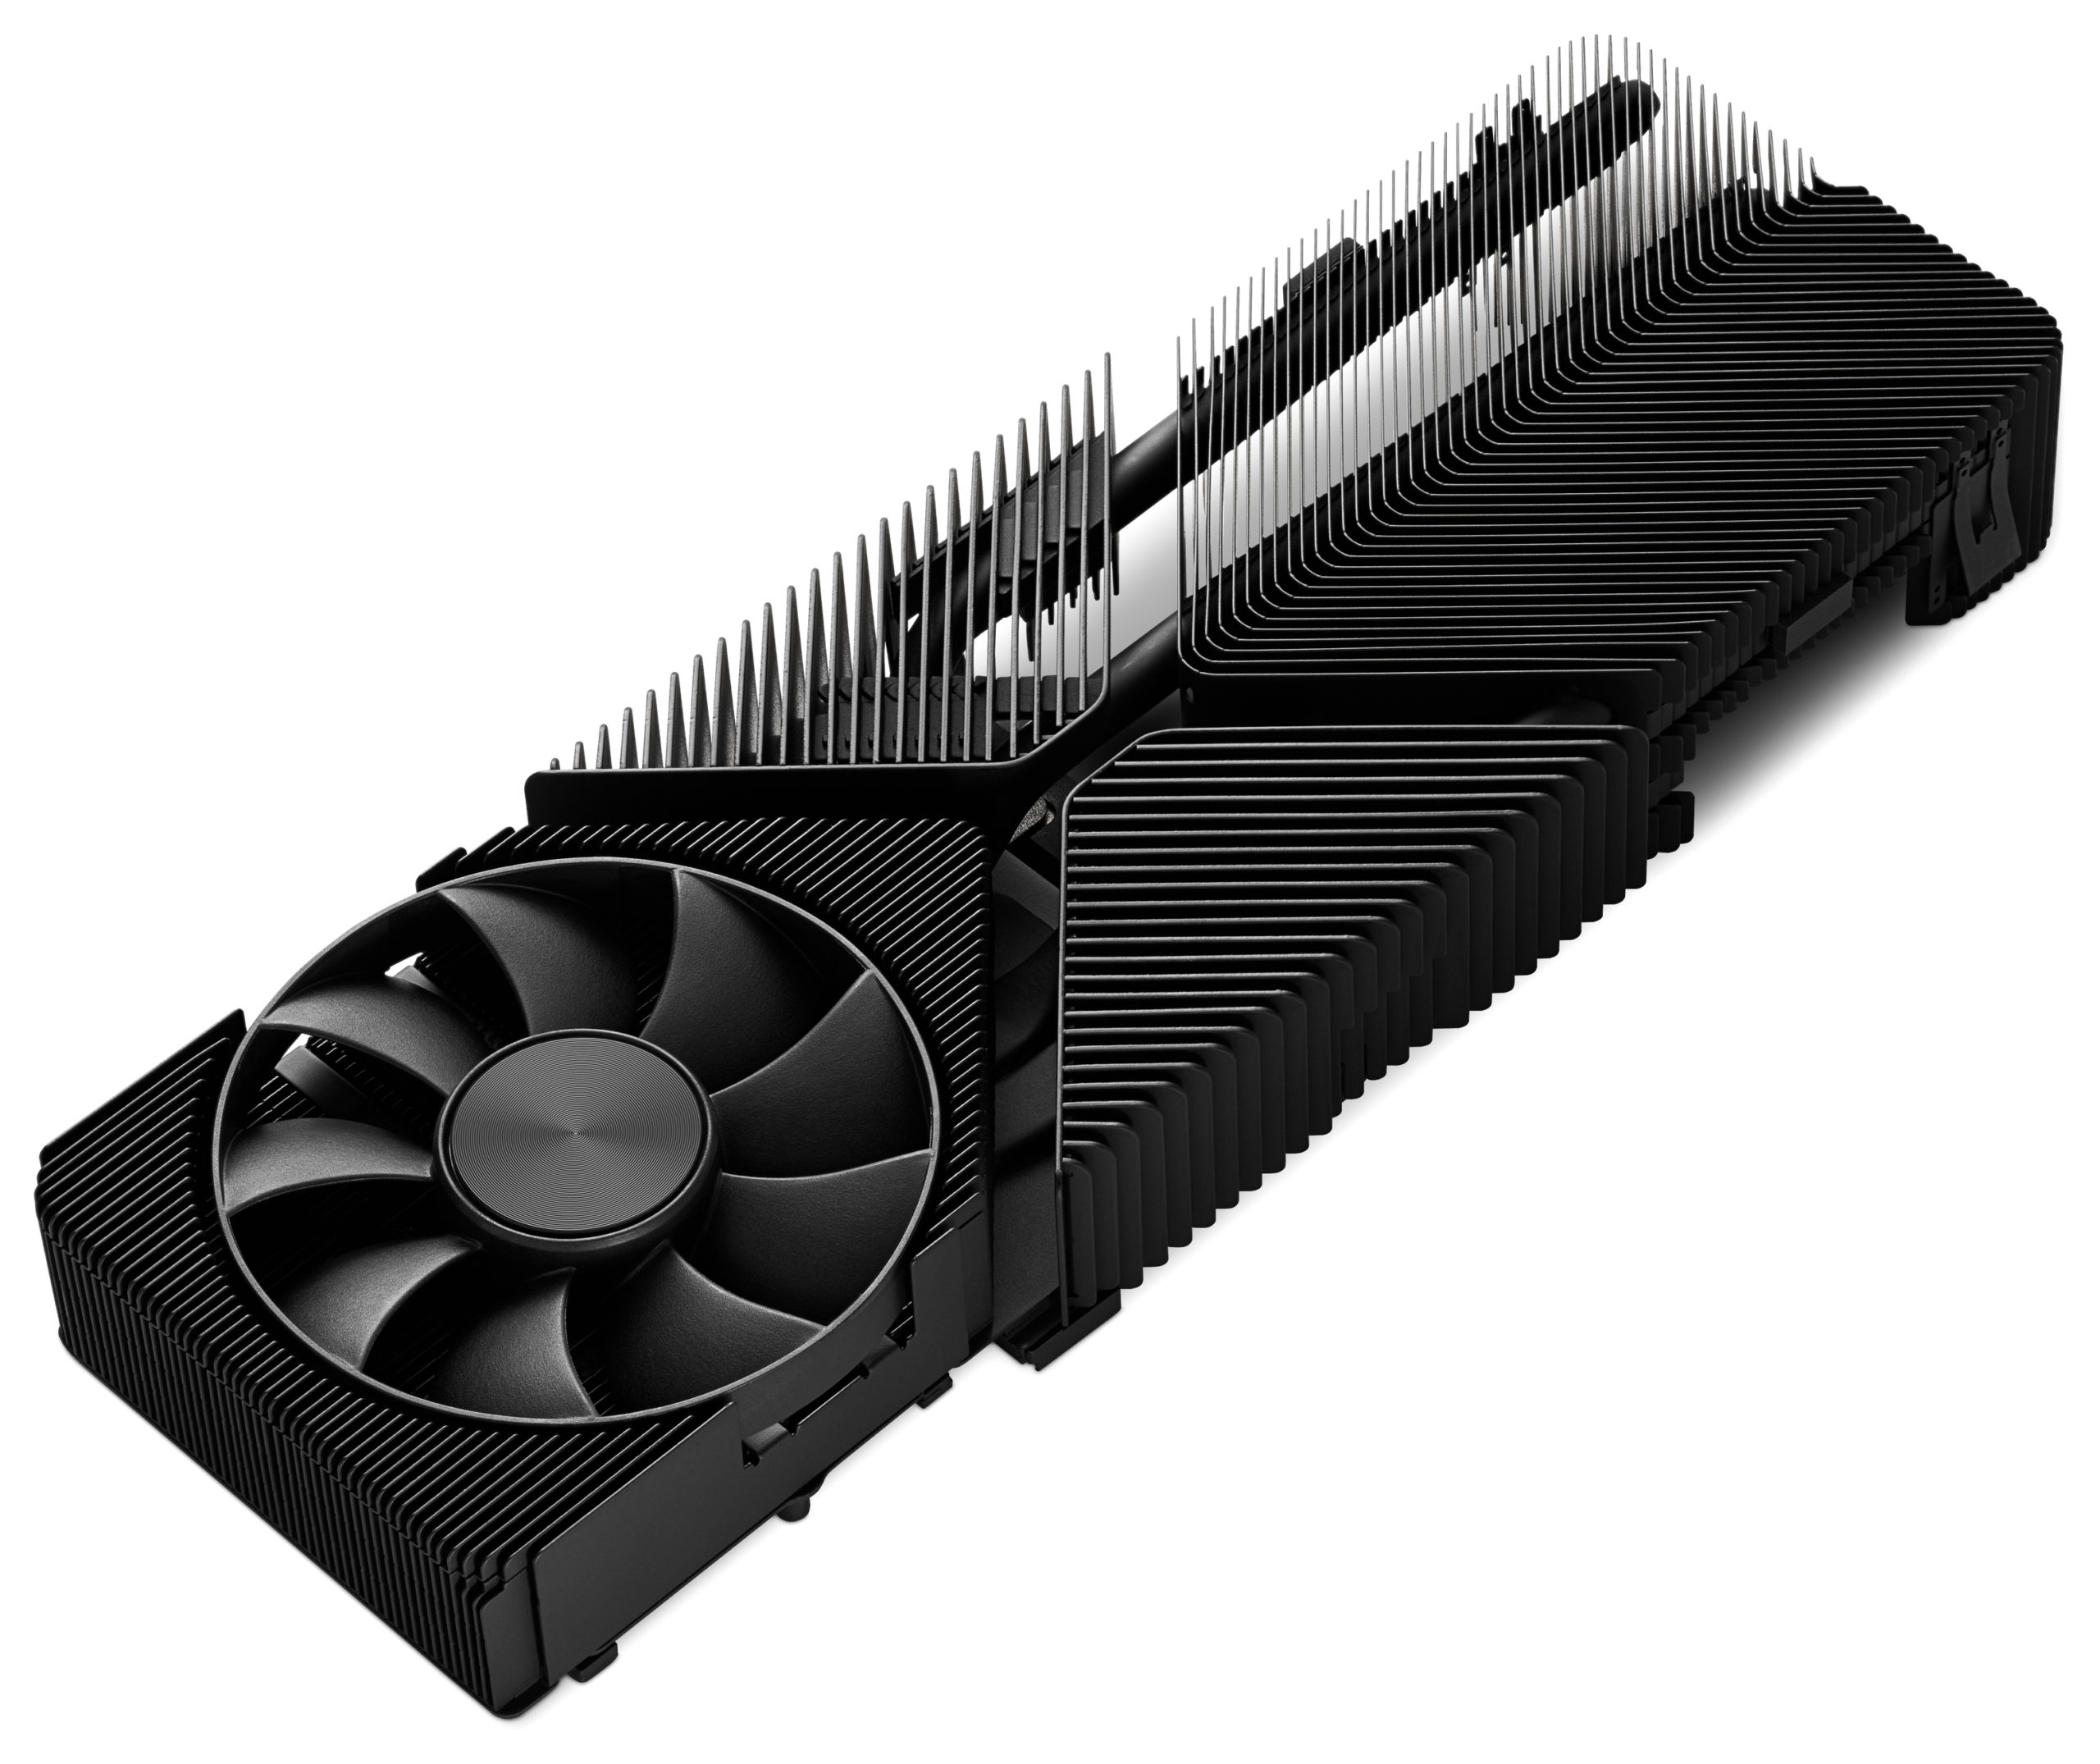 Nvidia GeForce RTX 3080 Ti Founders Edition 1